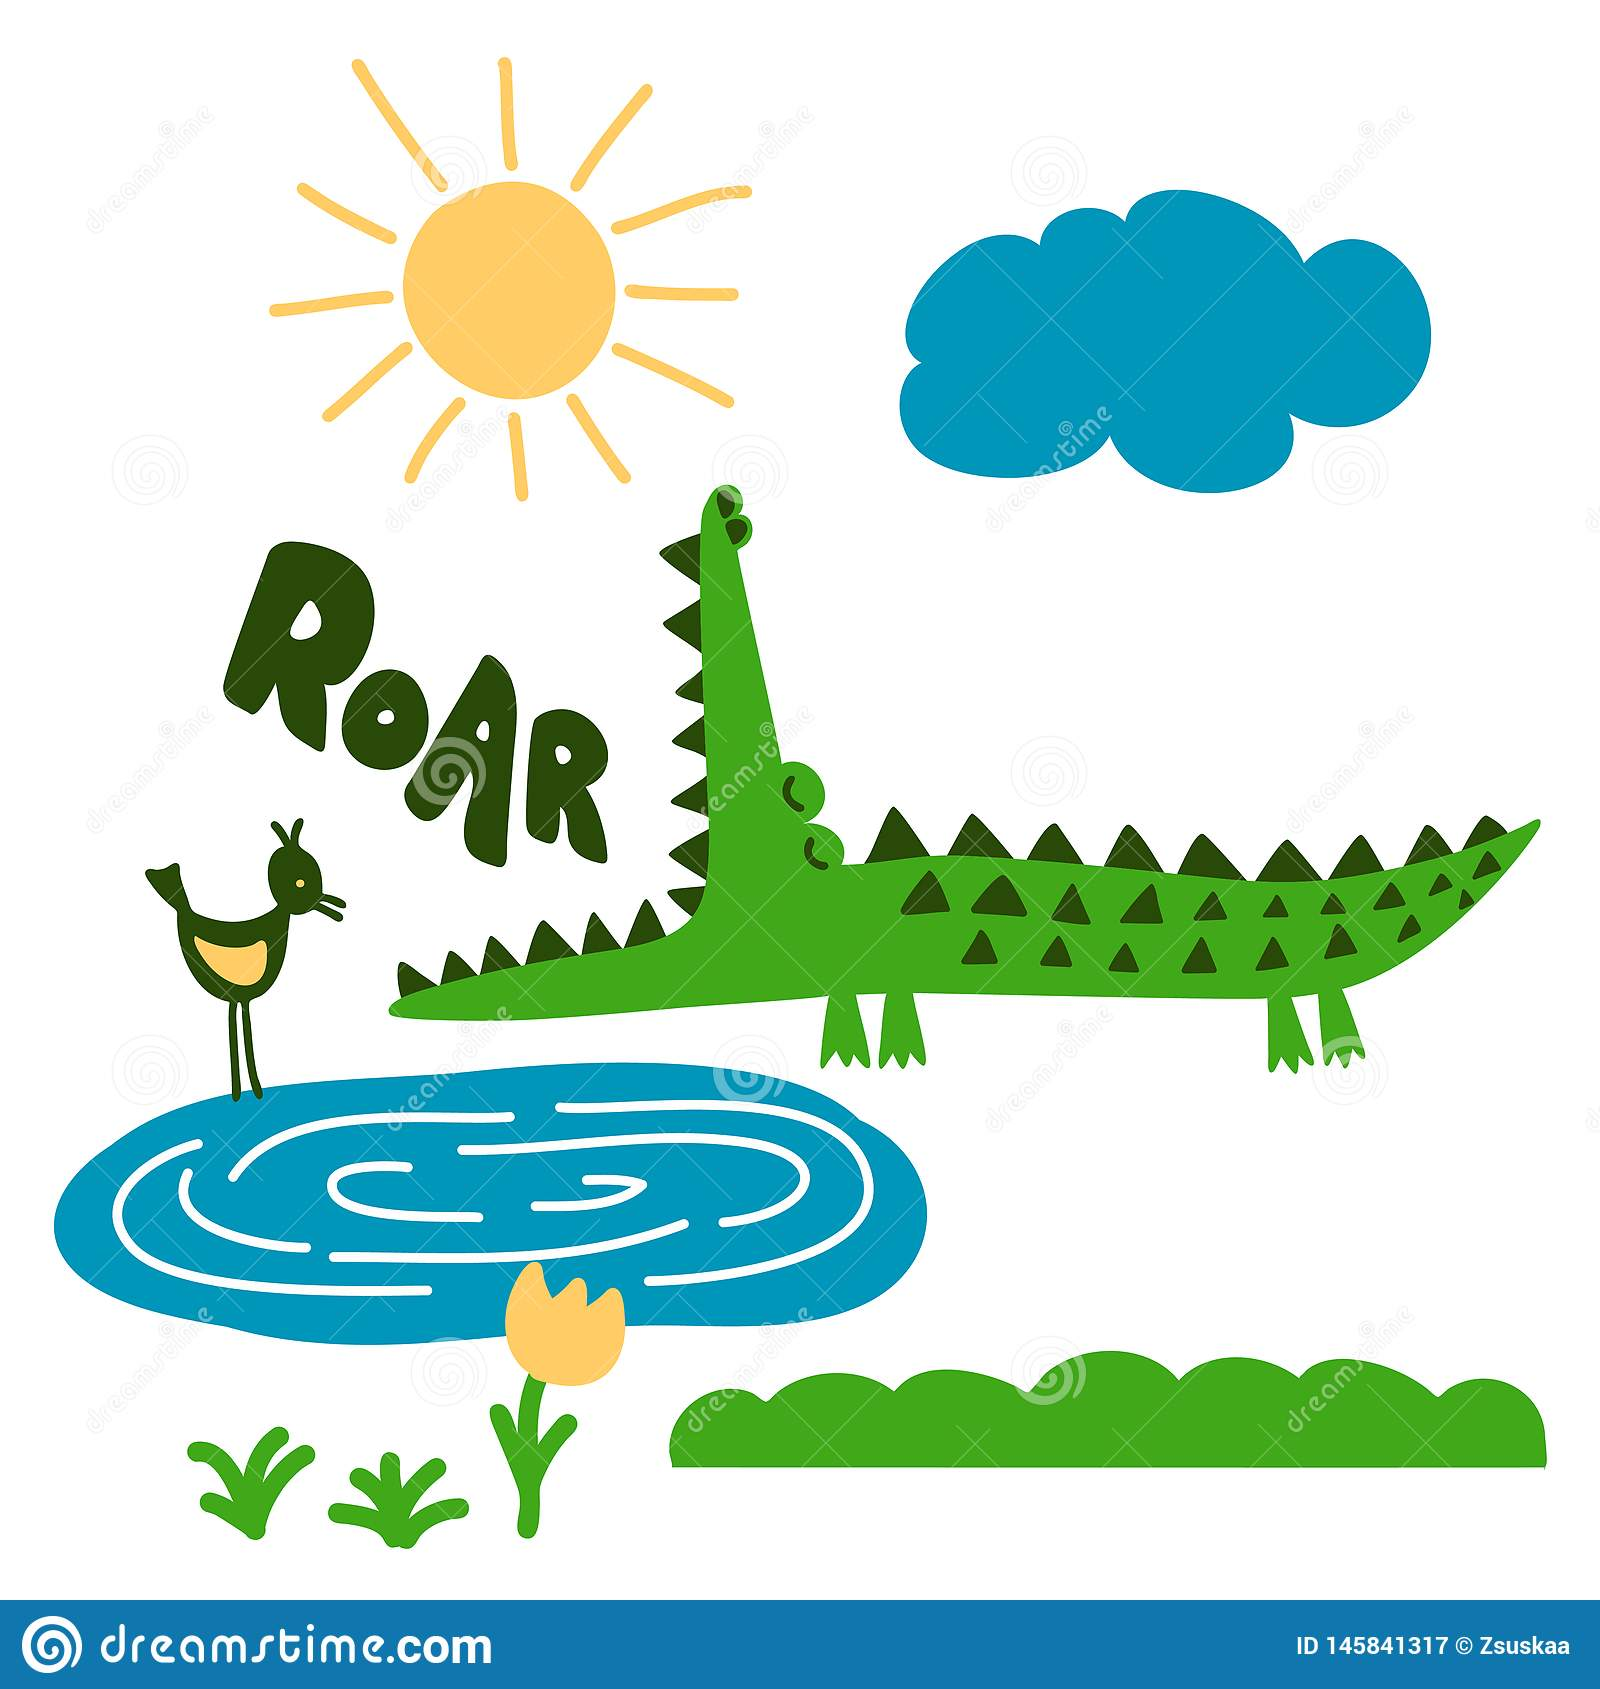 Crocodile and nature print design with `roar` text- funny hand drawn doodle, cartoon alligator.